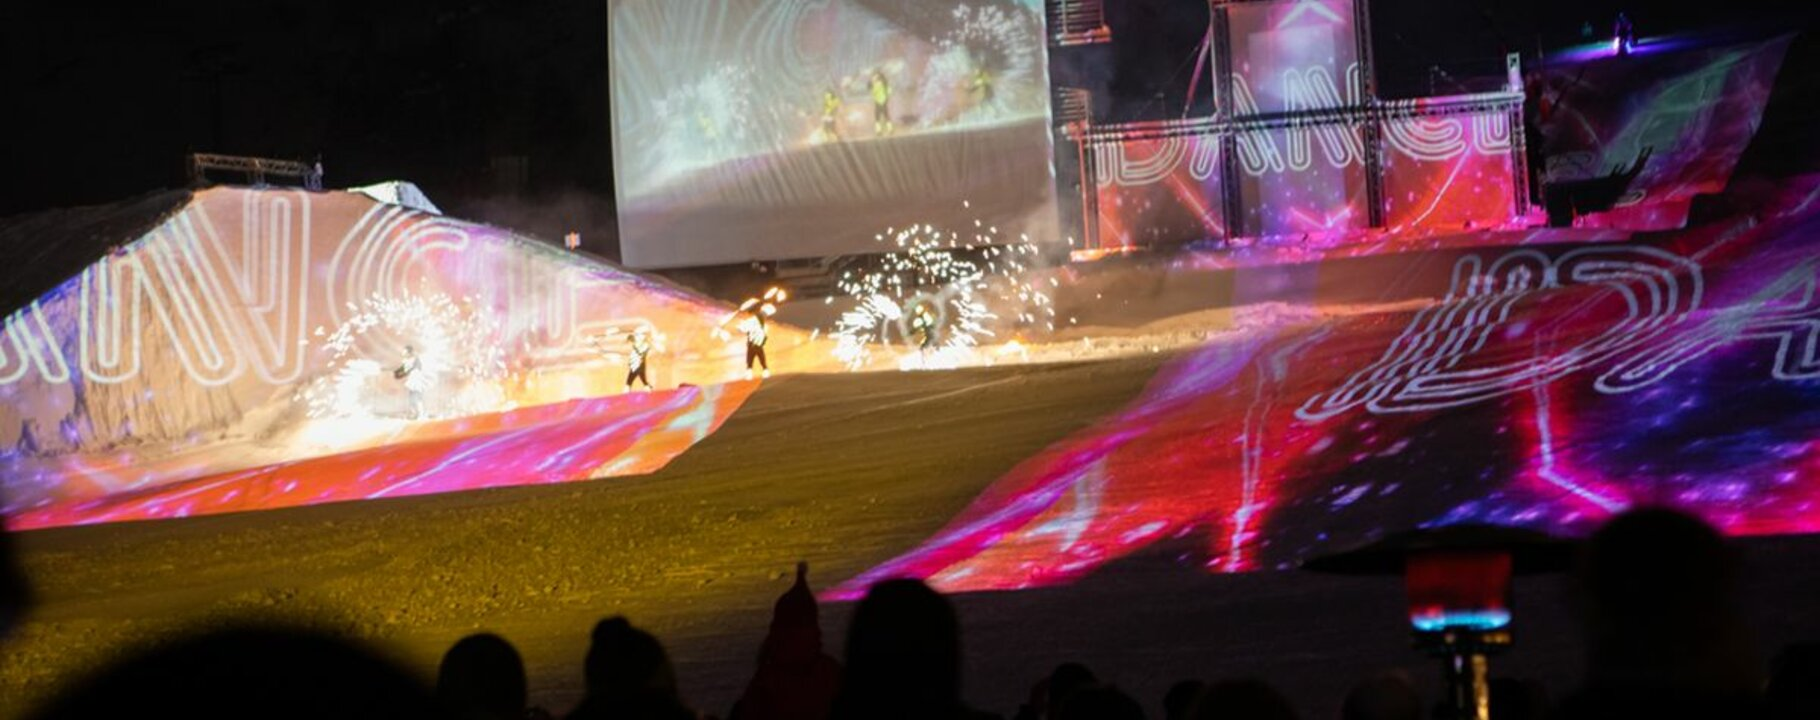 Ski show Nightflow in Serfaus Fiss Ladis in Winter 2019/20 theme Rock the snow | © Andreas Kirschner